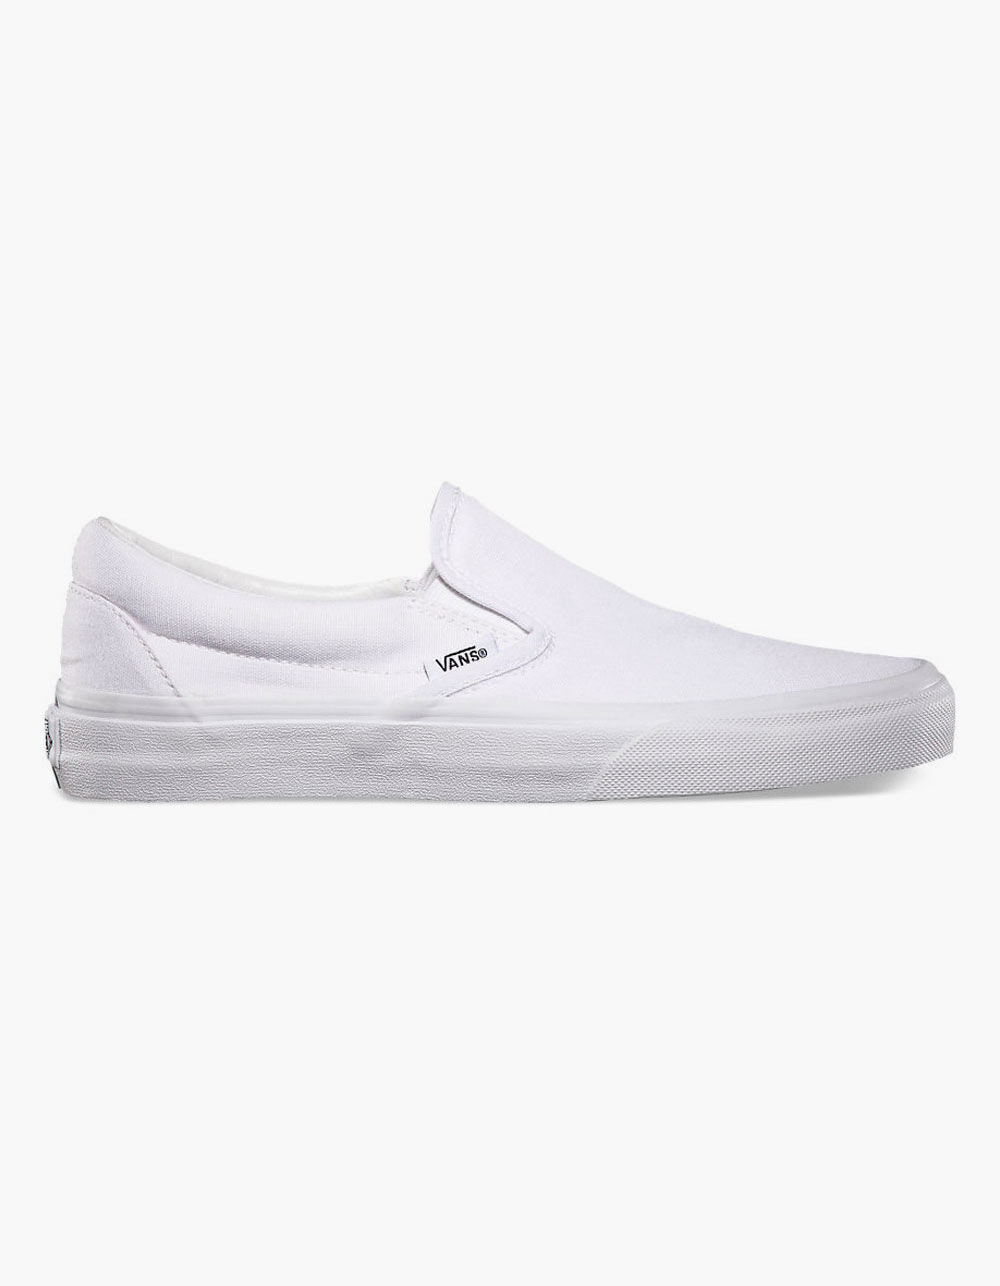 VANS Classic Slip-On True White Shoes